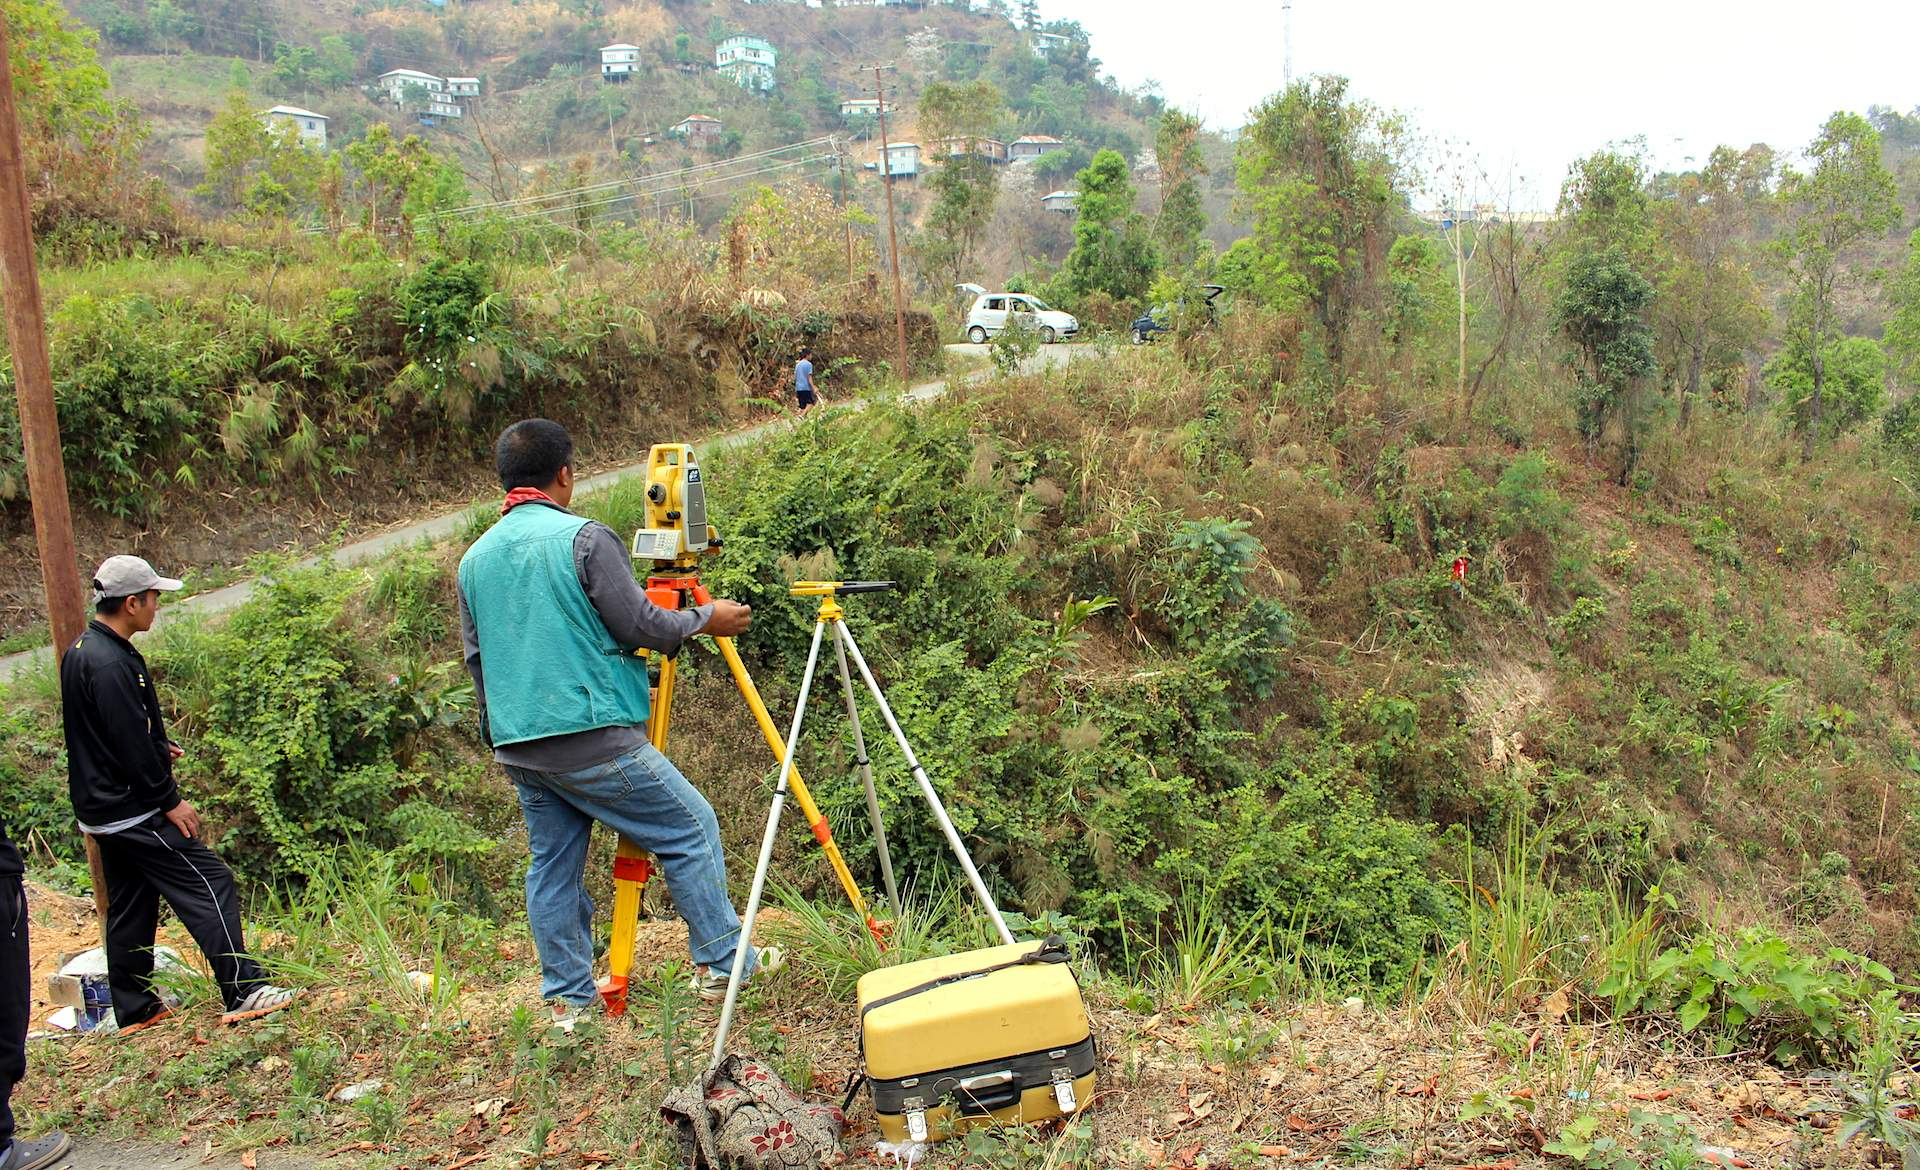 Surveyors map the 2.49 acres of hillside land for Mizoram Bible College expansion. All funds are due by December 20, 2017. All land in Mizoram lies on hillsides.